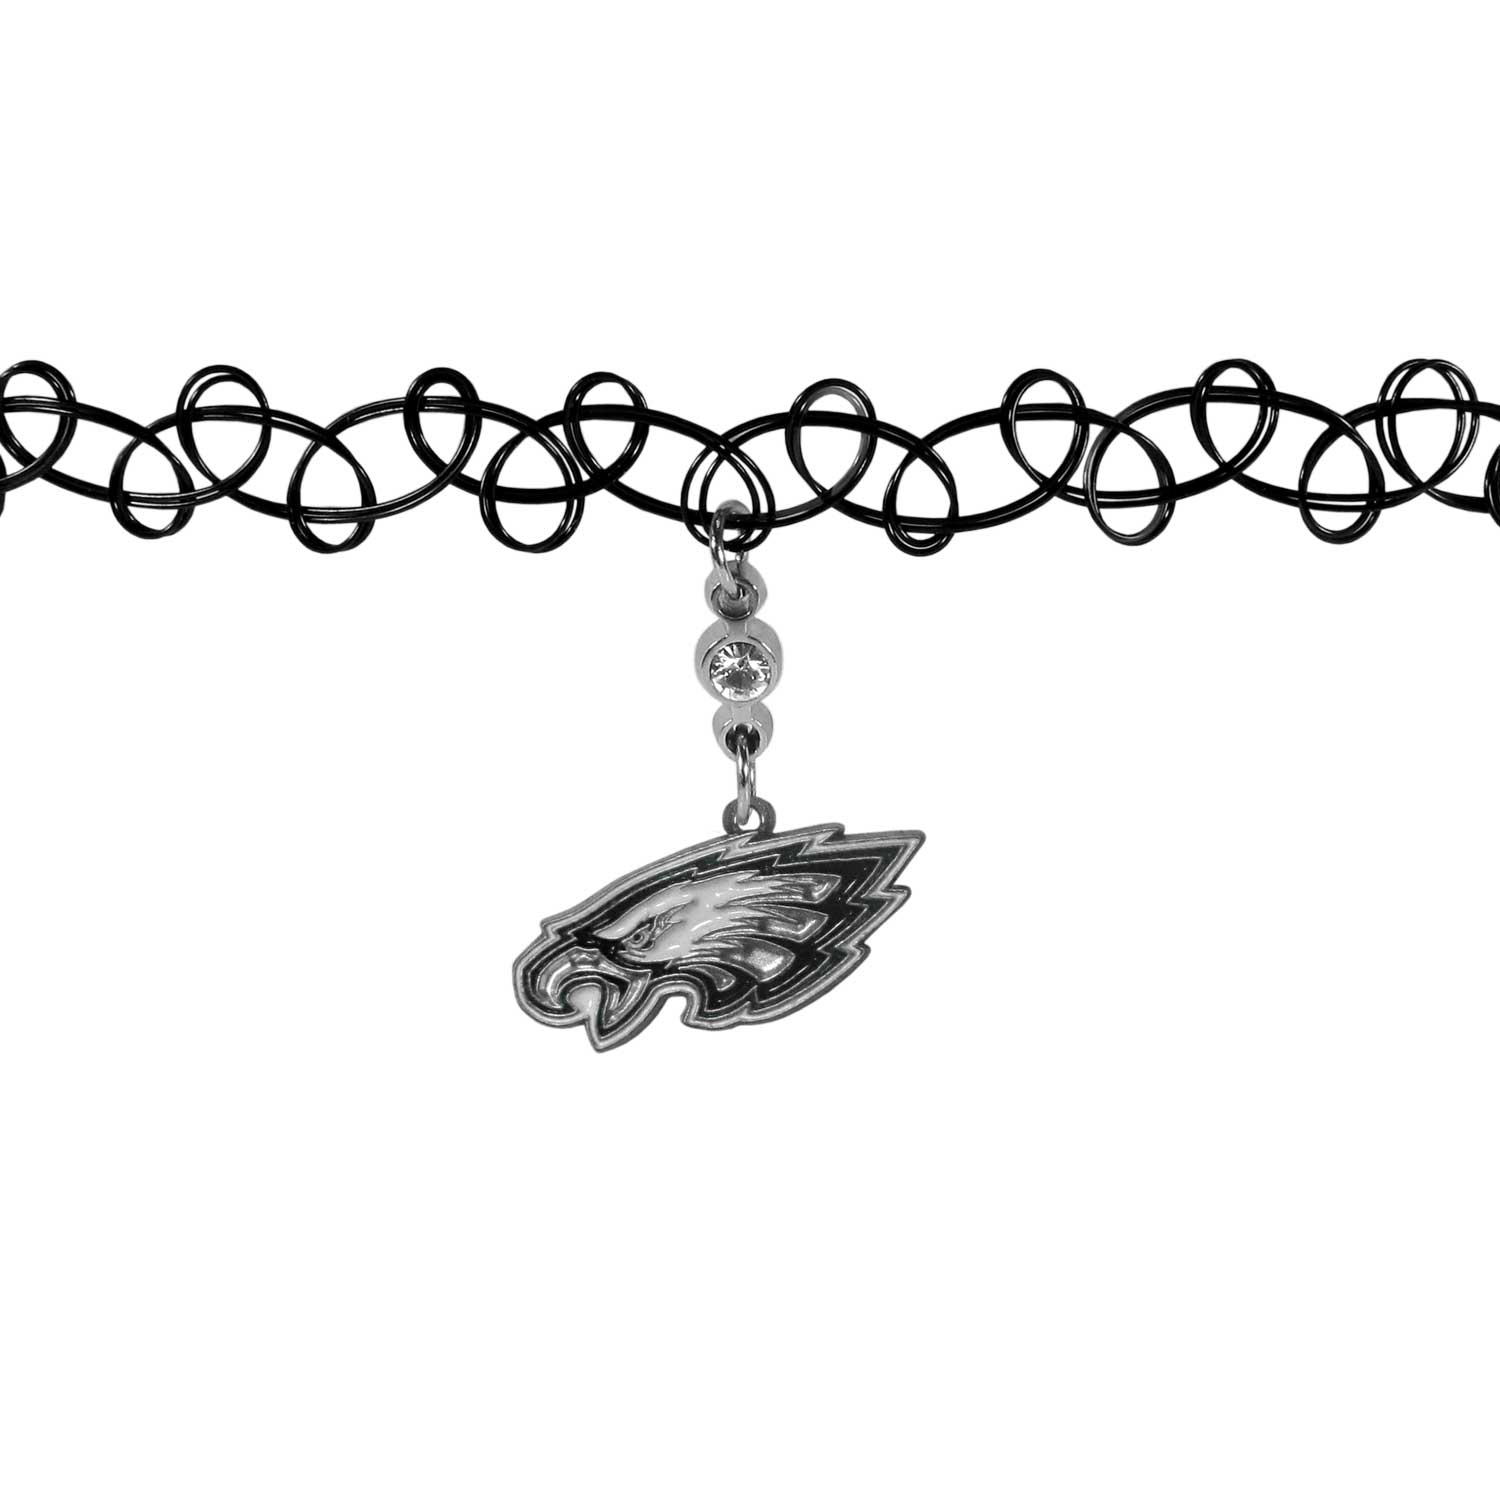 Philadelphia Eagles Knotted Choker - This retro, knotted choker is a cool and unique piece of fan jewelry. The tattoo style choker features a high polish Philadelphia Eagles charm with rhinestone accents.